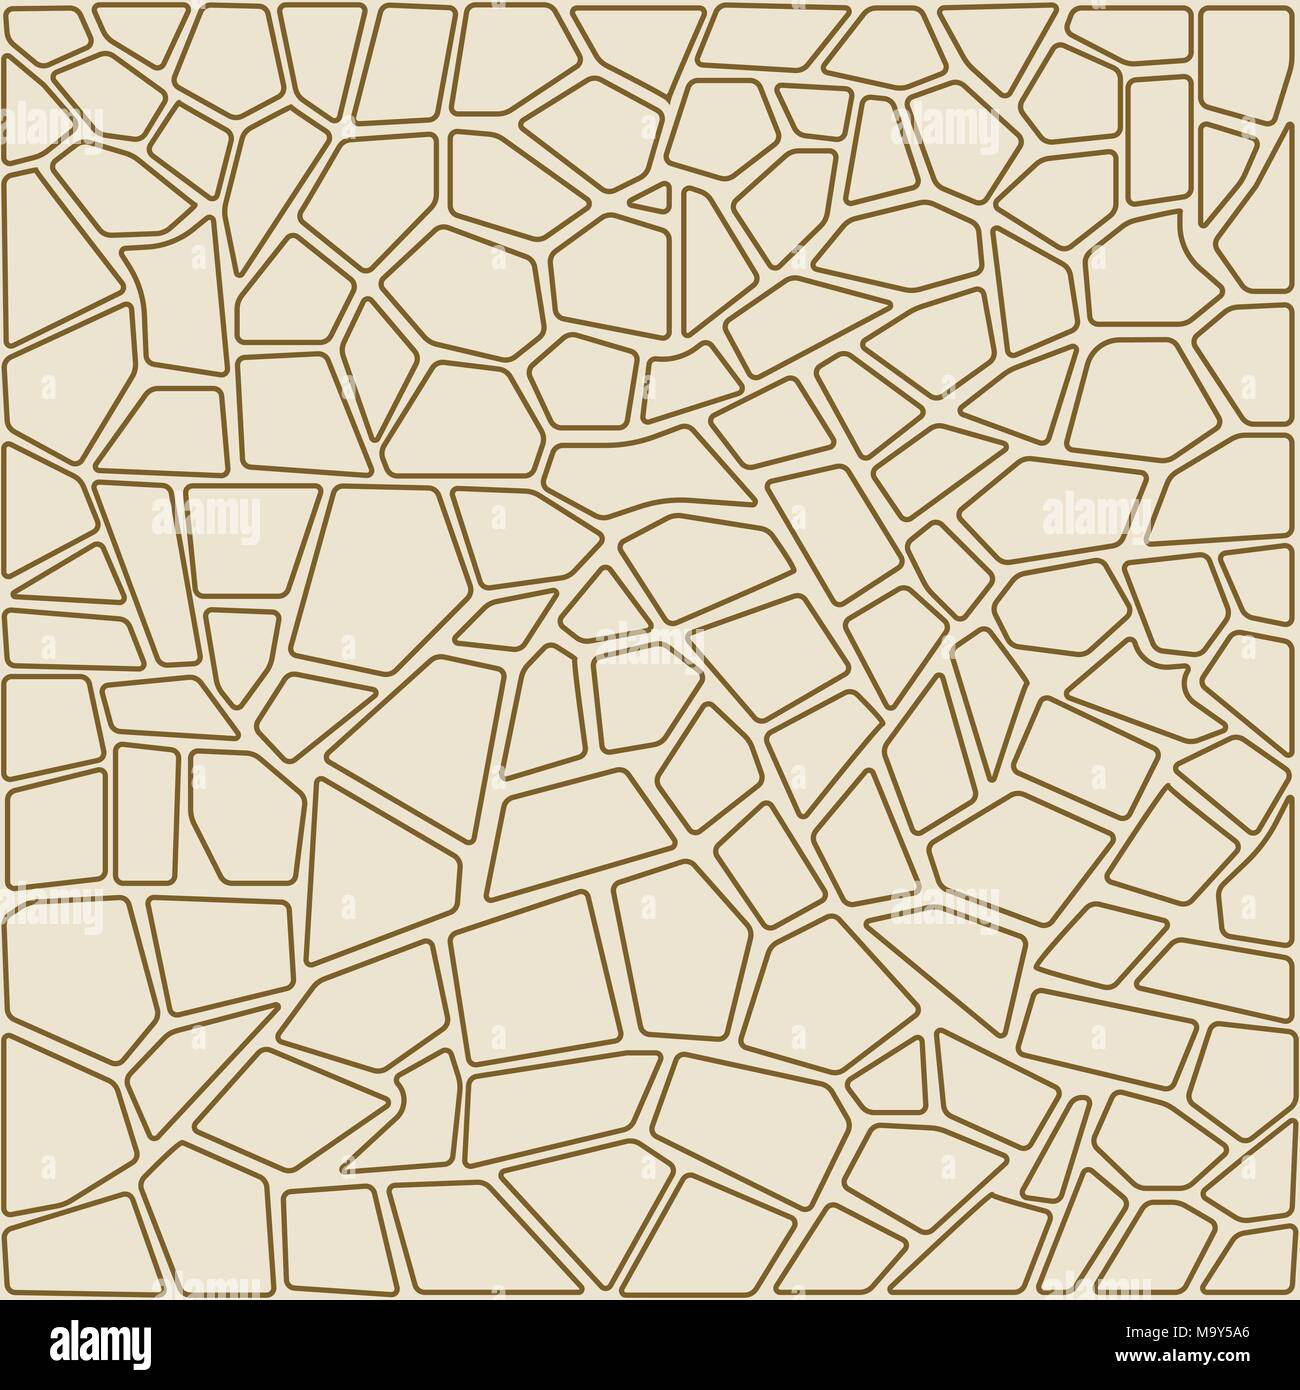 stone seamless pattern - Stock Vector